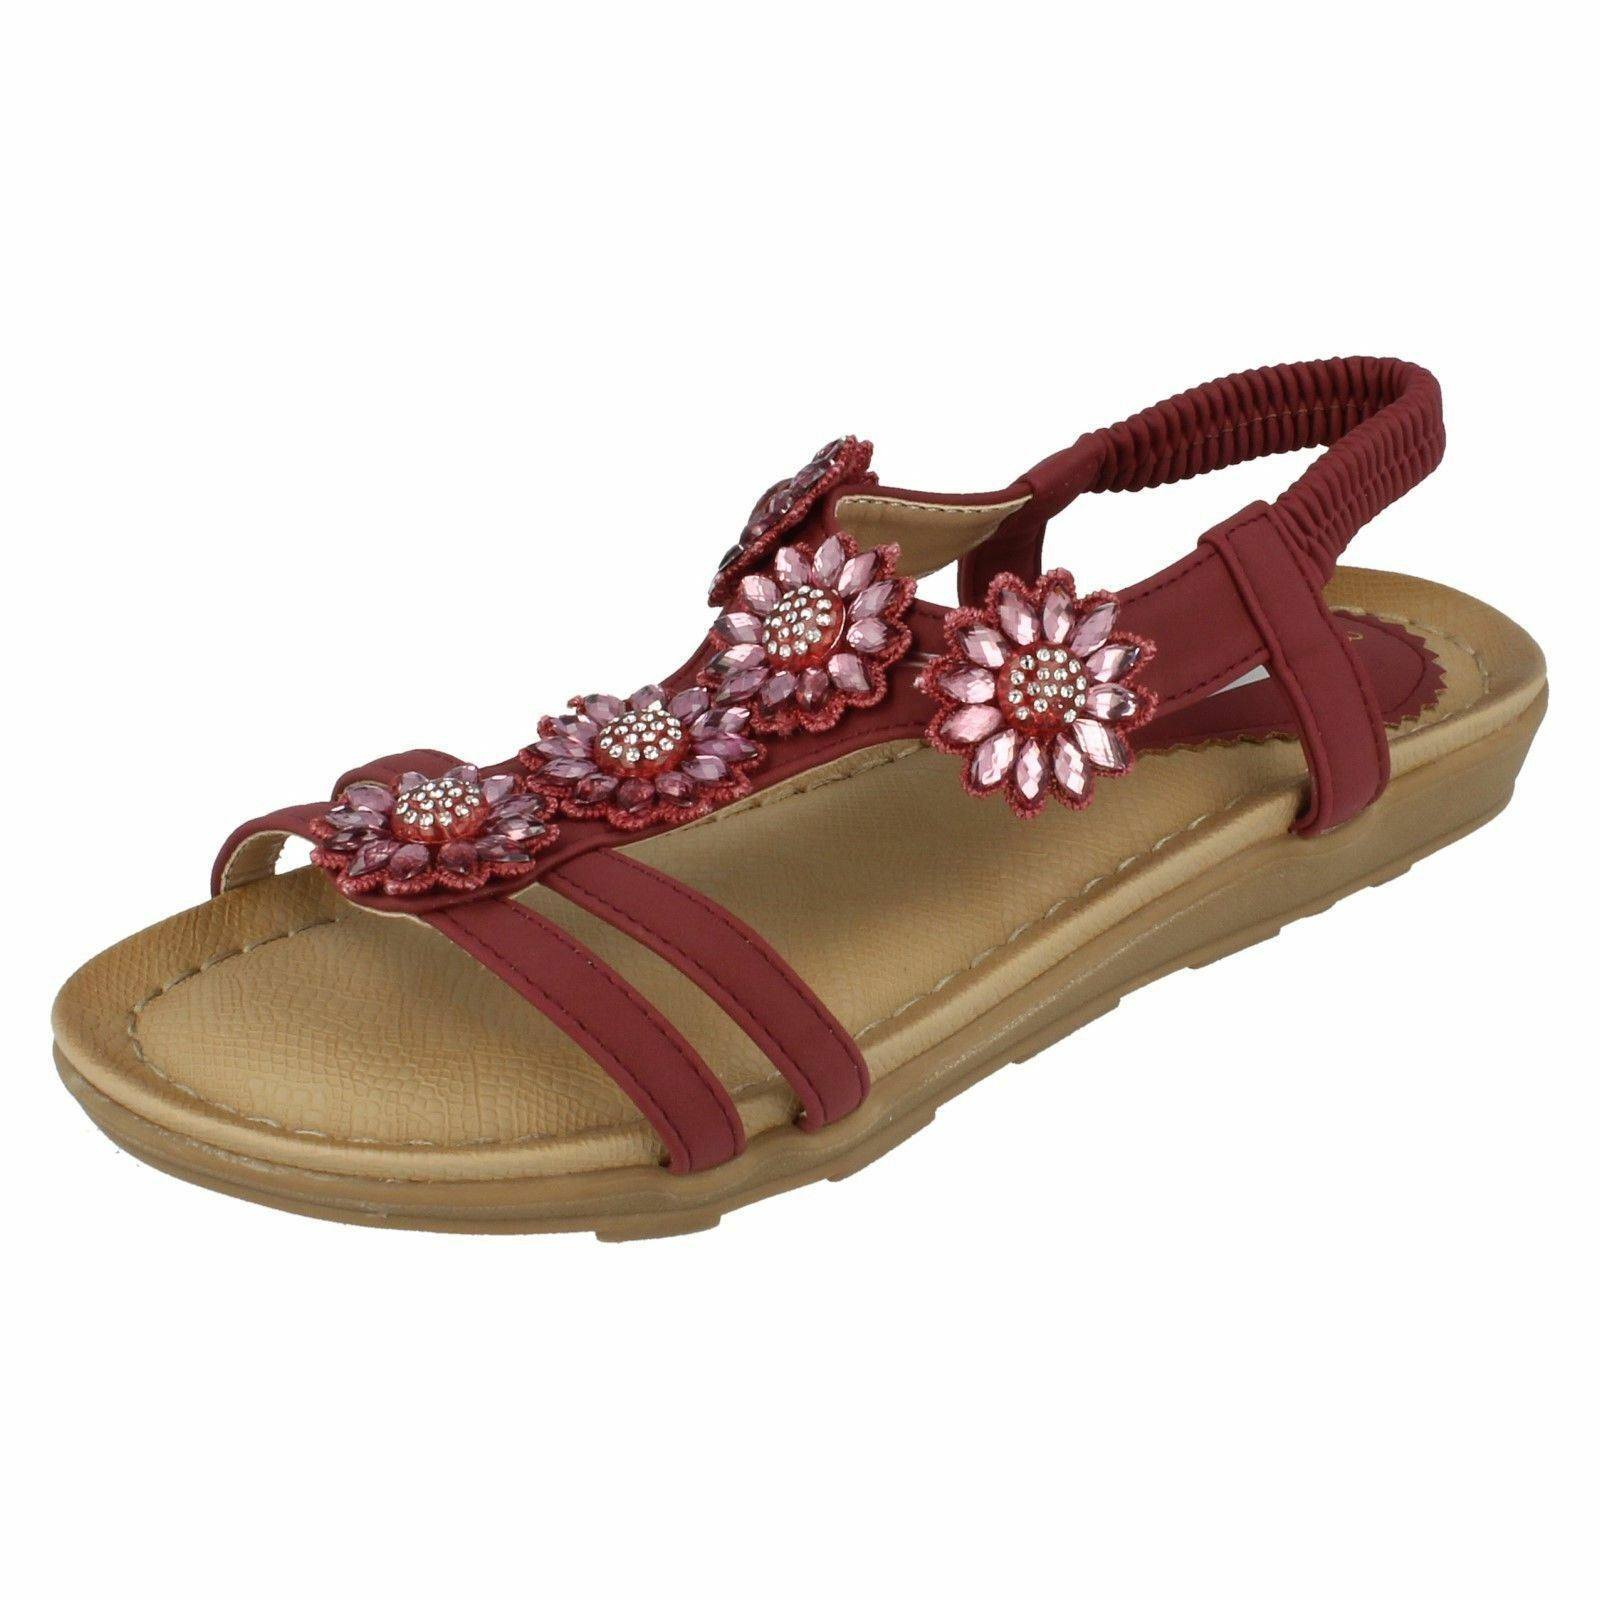 LADIES ANNE MICHELLE PURPLE SANDALS PINK SLINGBACK FLORAL JEWELLED SANDALS PURPLE SANTORINI d3a48b